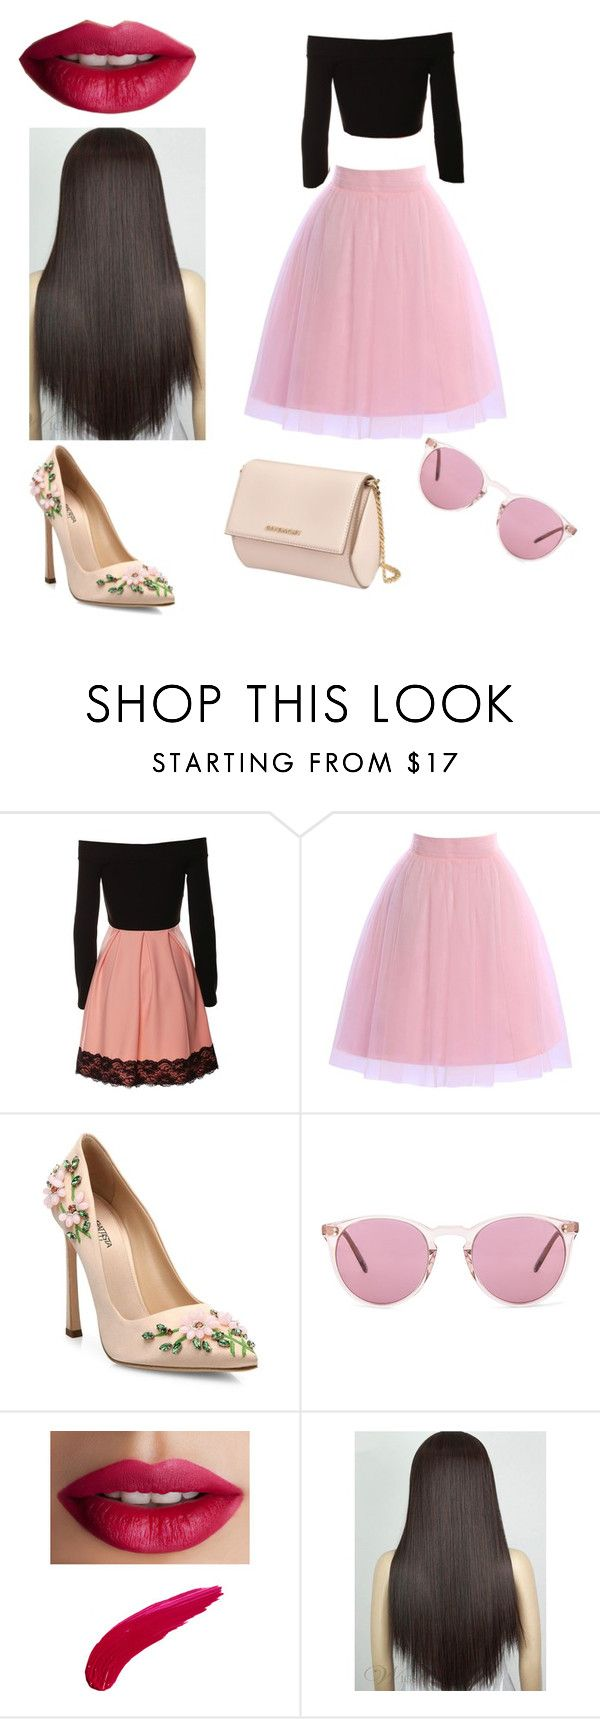 """""""Paris look"""" by bloemferre ❤ liked on Polyvore featuring Giambattista Valli, Oliver Peoples, TheBalm and Givenchy"""